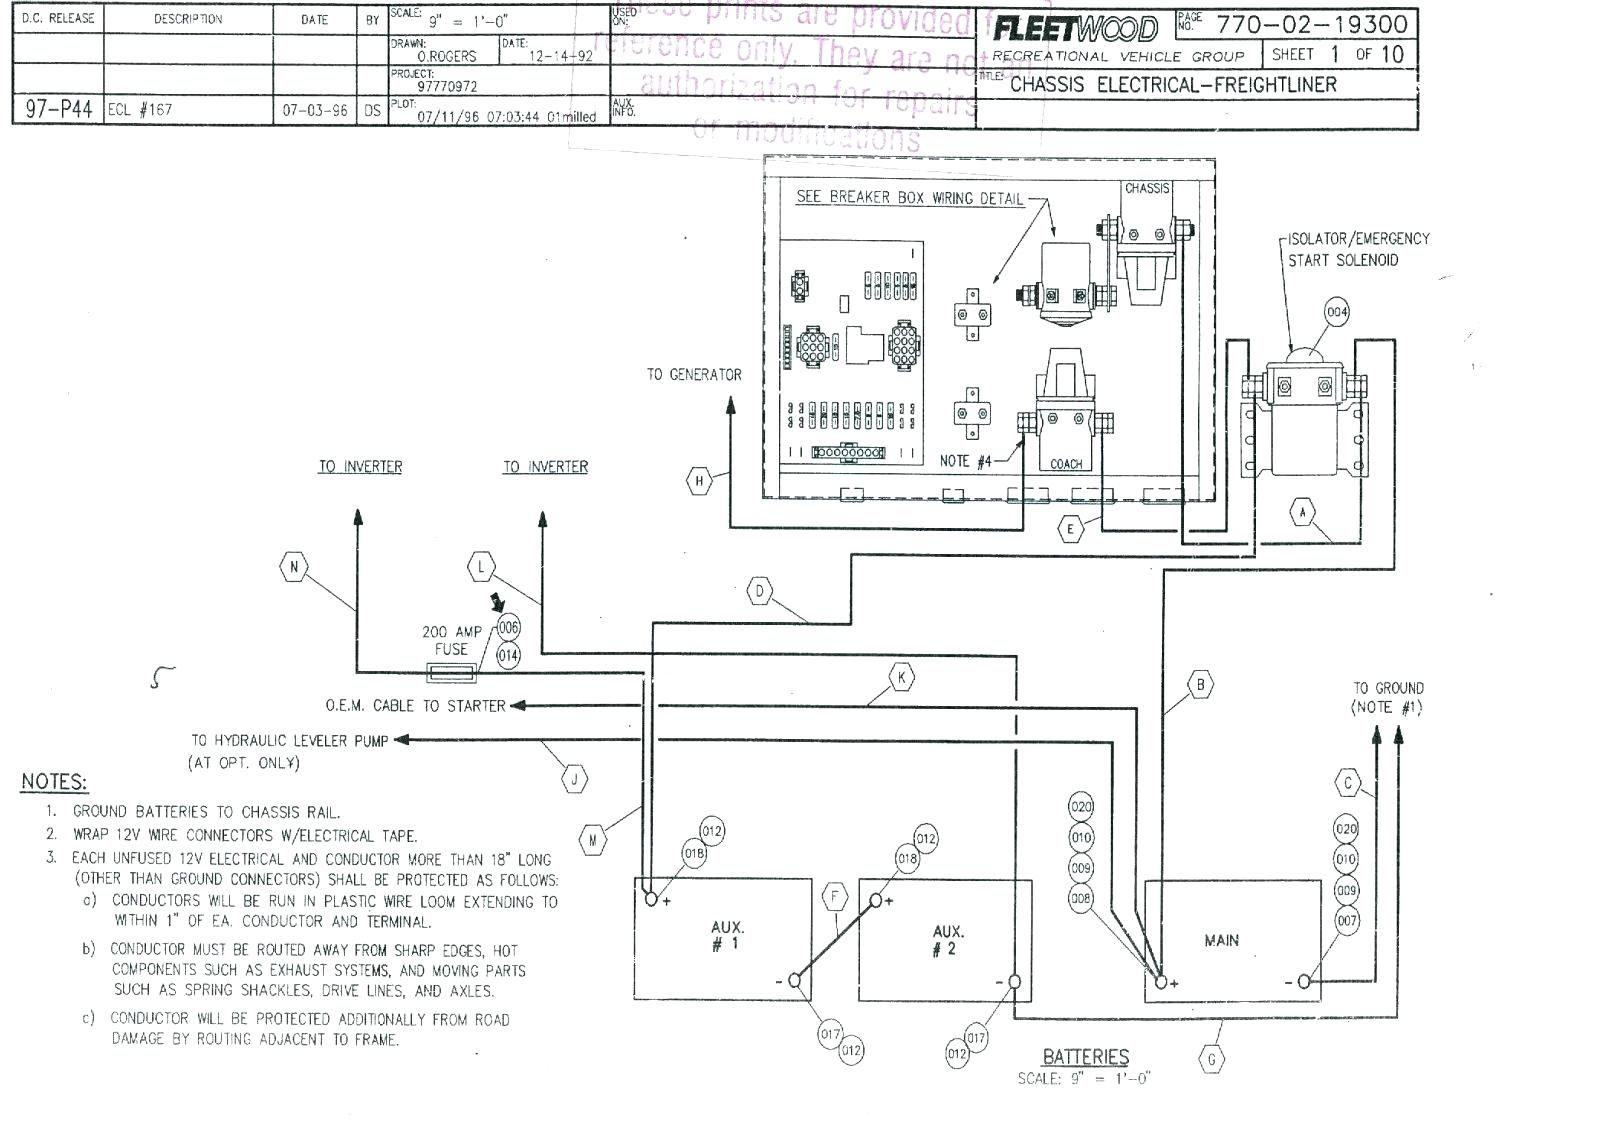 Marvelous Trailer Wiring Diagram Together With Manual For 1986 Winnebago Wiring Cloud Mousmenurrecoveryedborg